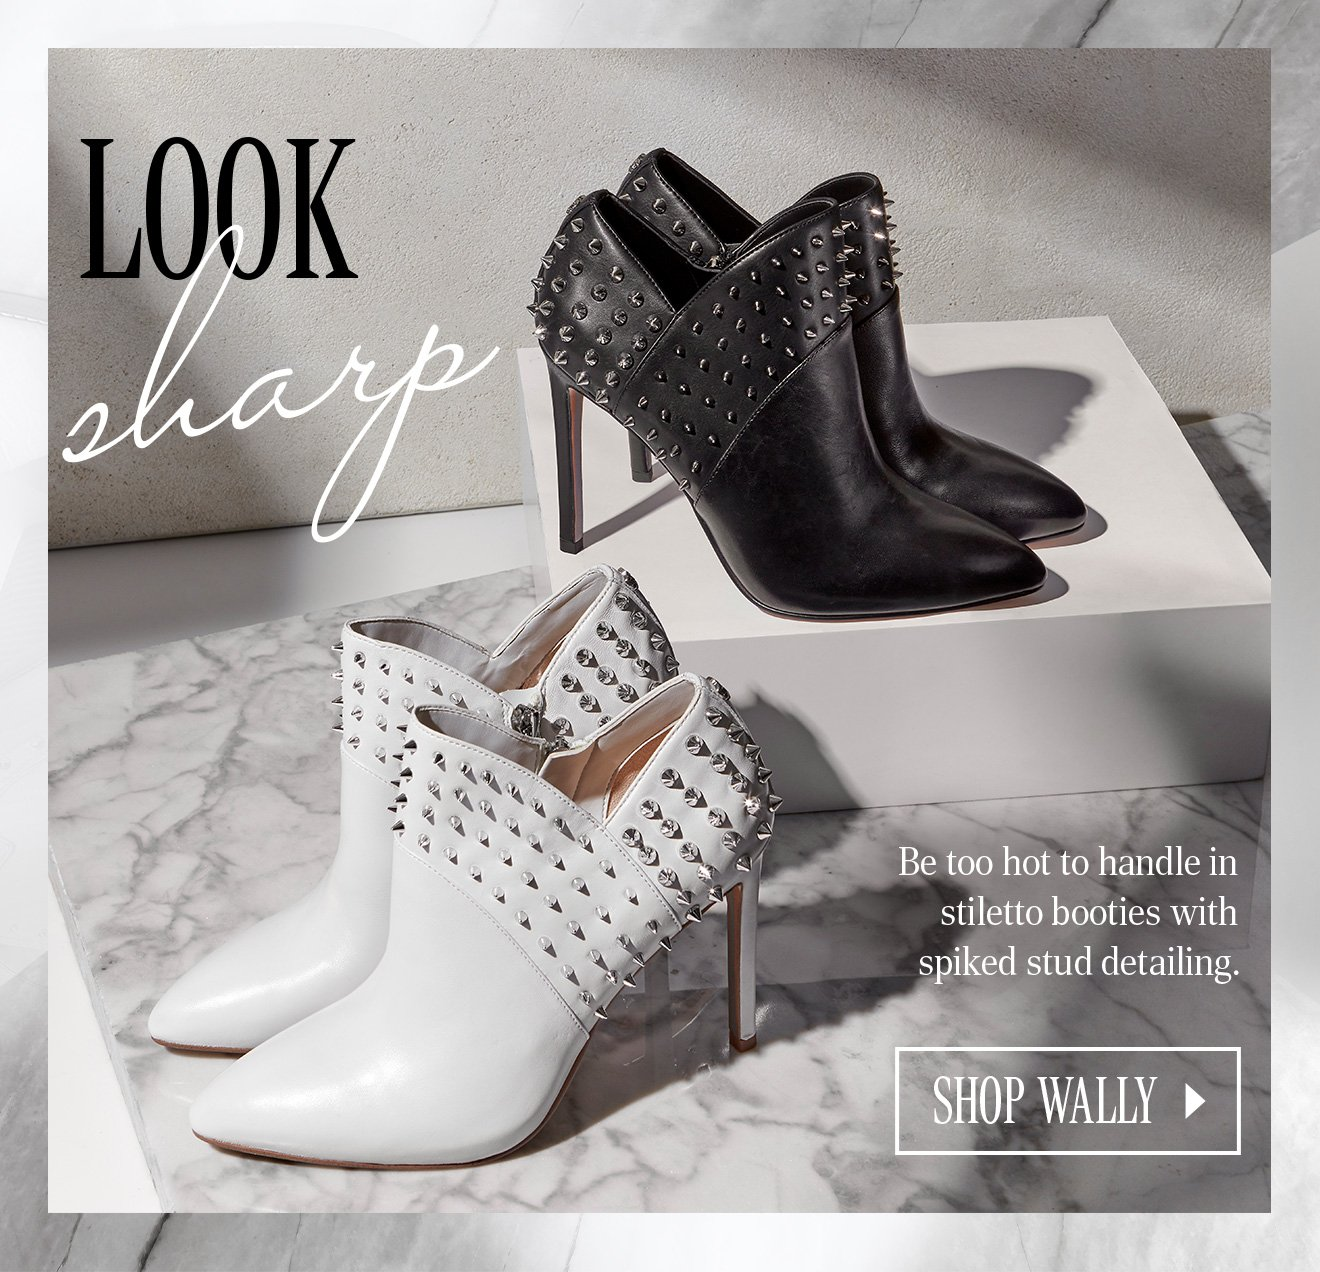 LOOK SHARP. Be too hot to handle in stiletto booties with spiked stud detailing. SHOP WALLY.